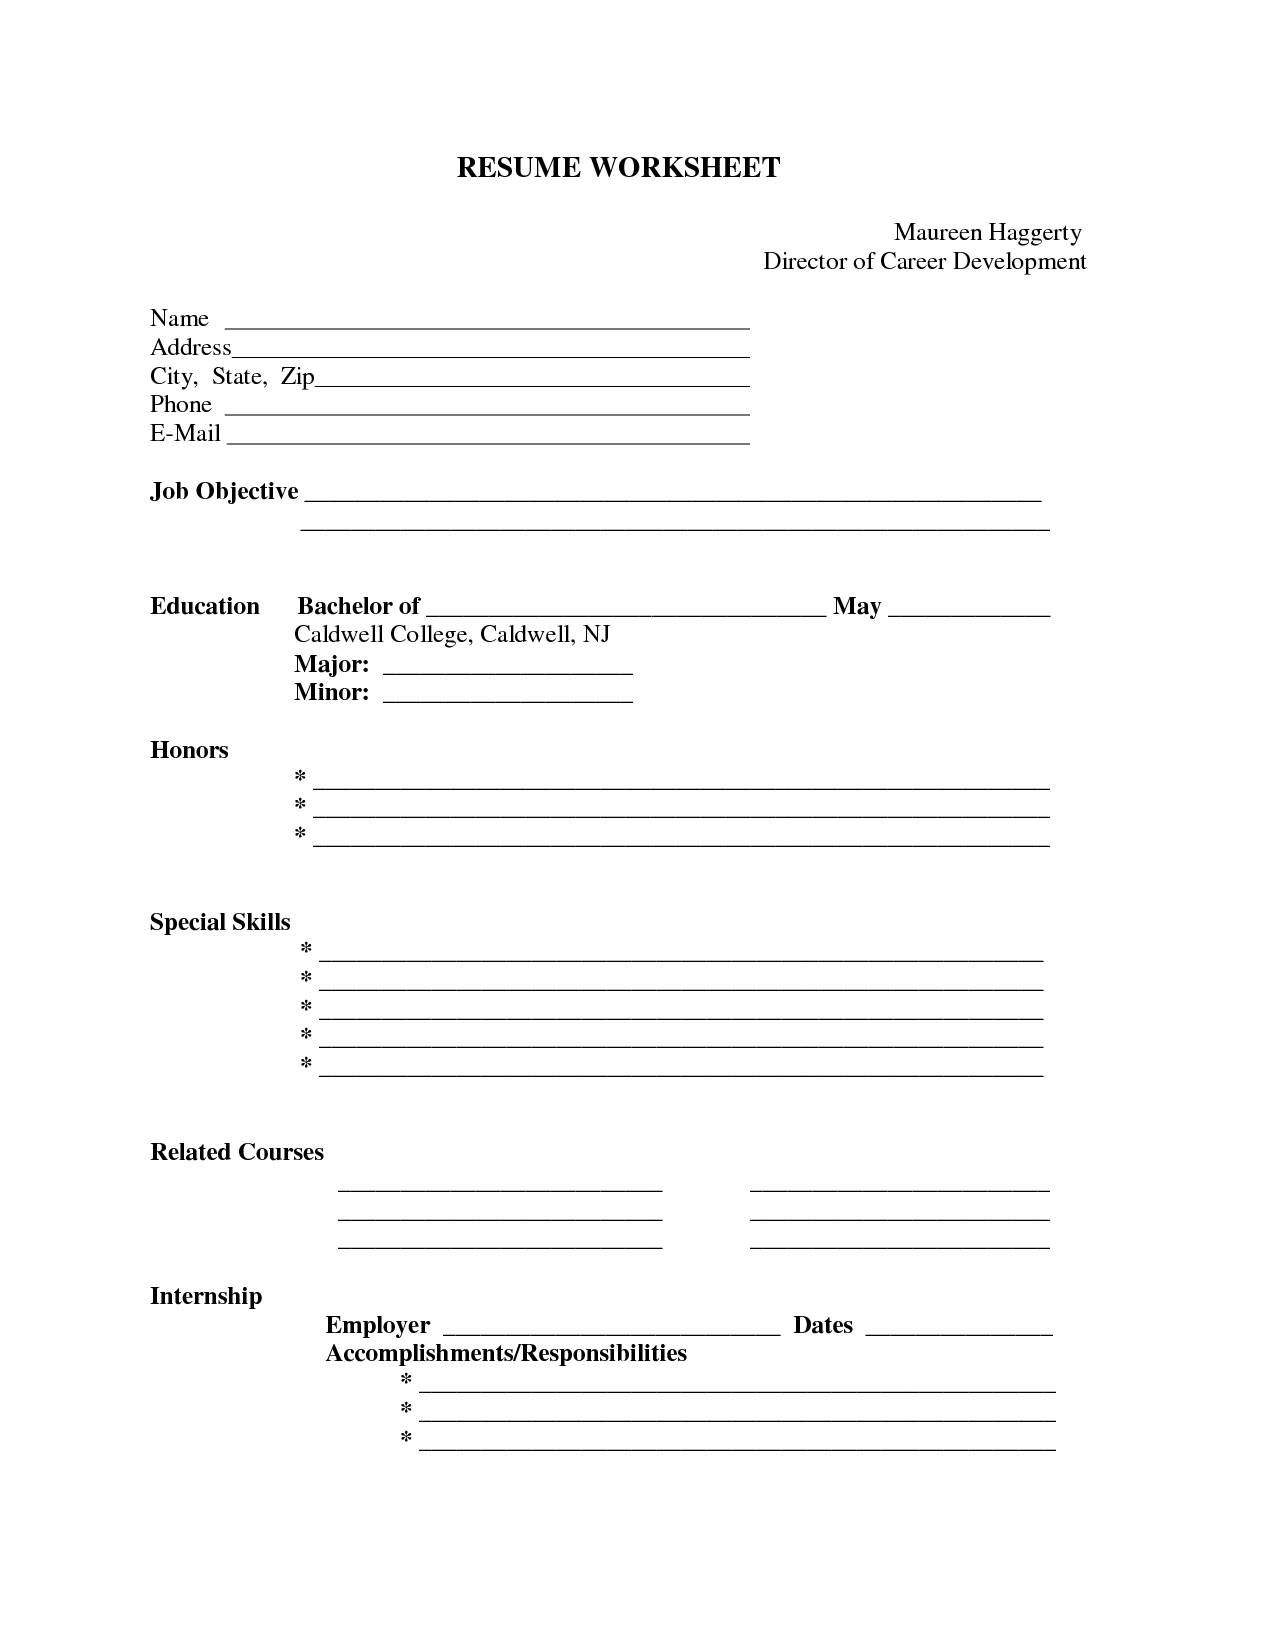 Free Resume Builder For High School Students Templates And Print Online  Maker Template Student Blank Ideas Example  Www.free Resume Builder